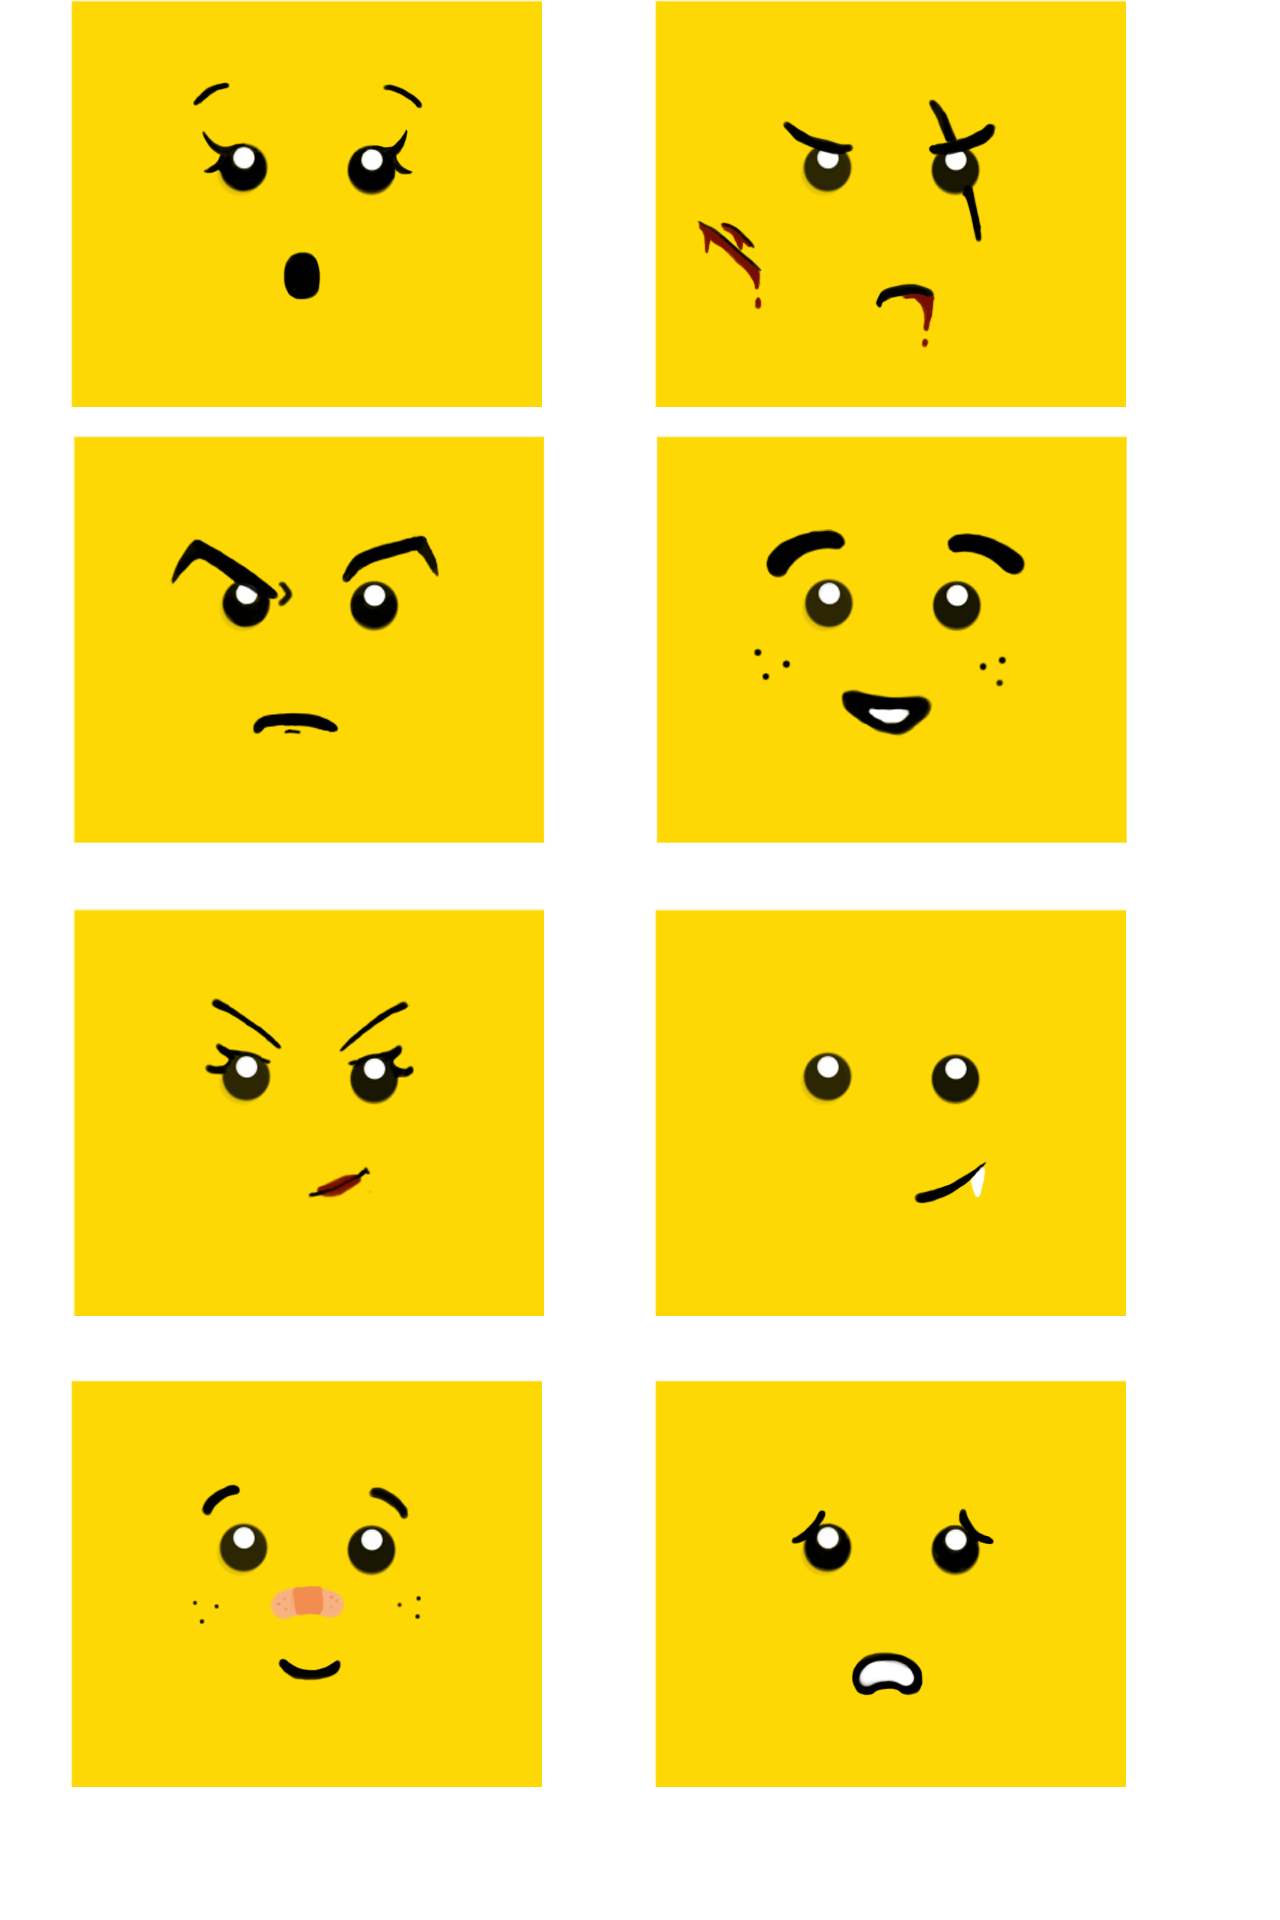 Lego_commission_2.png (1280×1920) | Lego Party | Pinterest